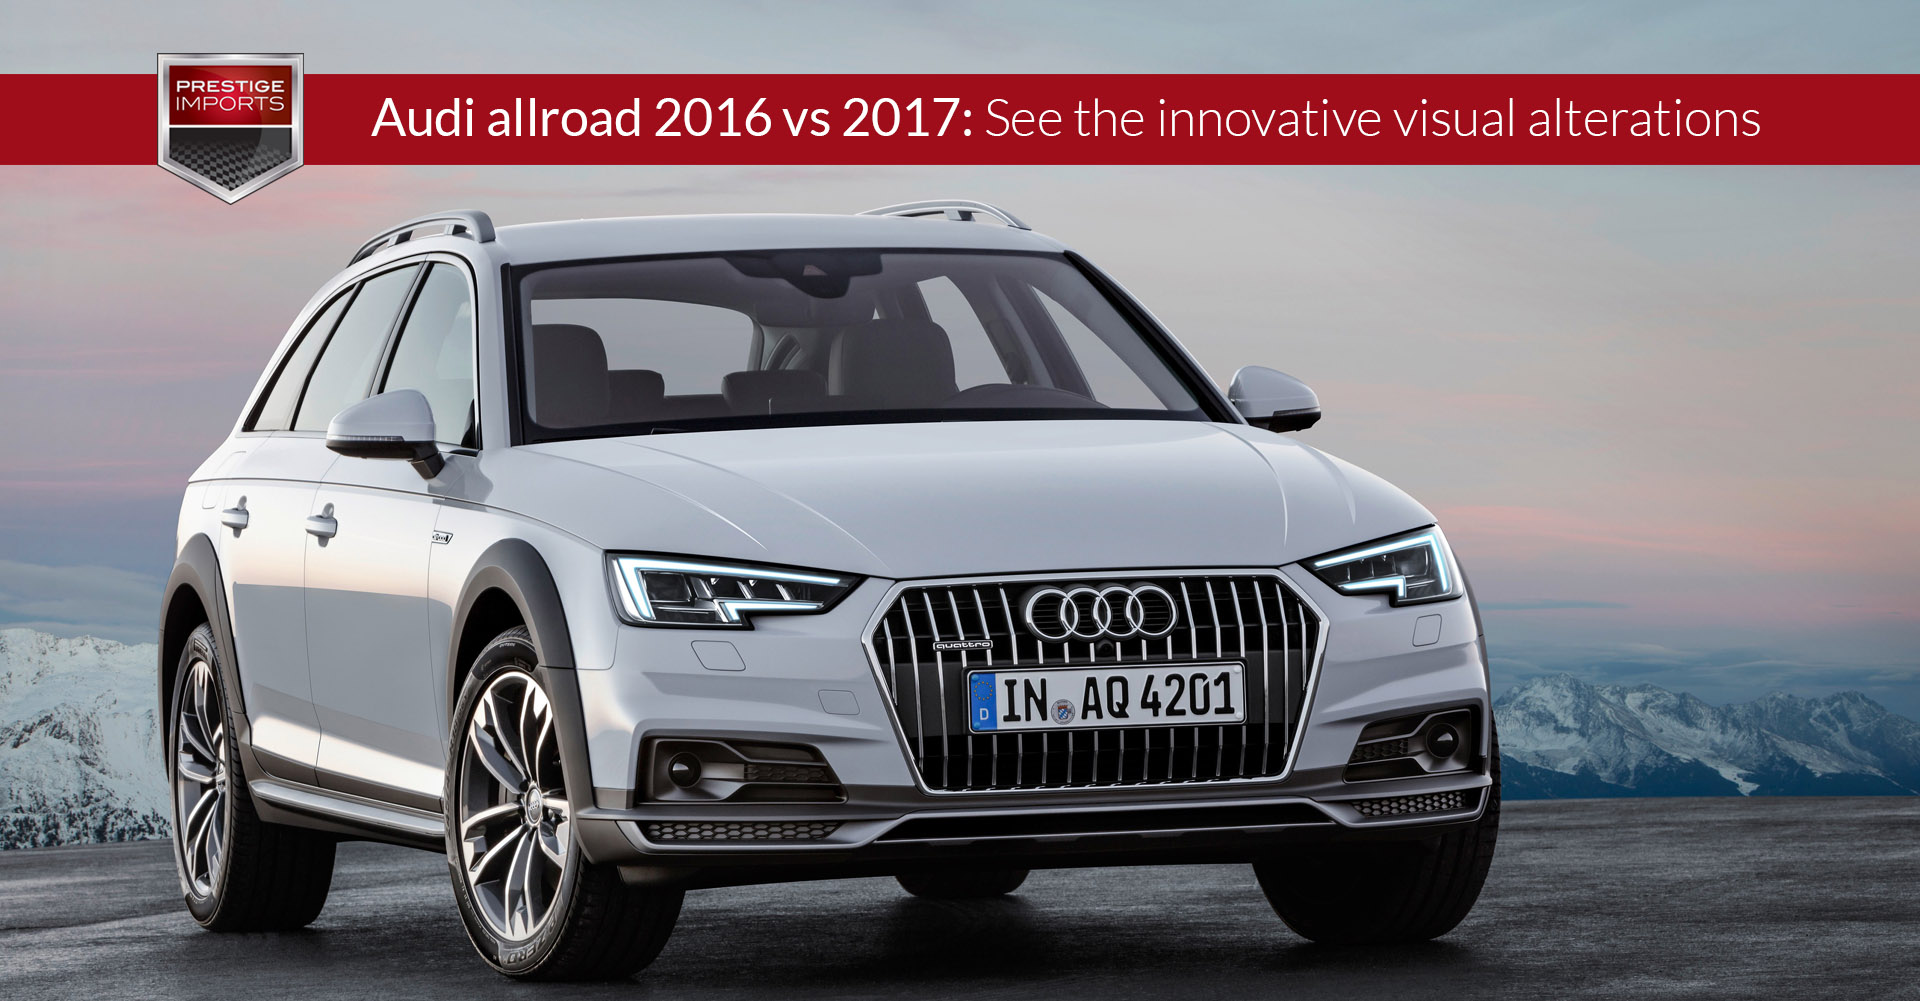 Audi allroad 2016 vs 2017: See the innovative visual alterations